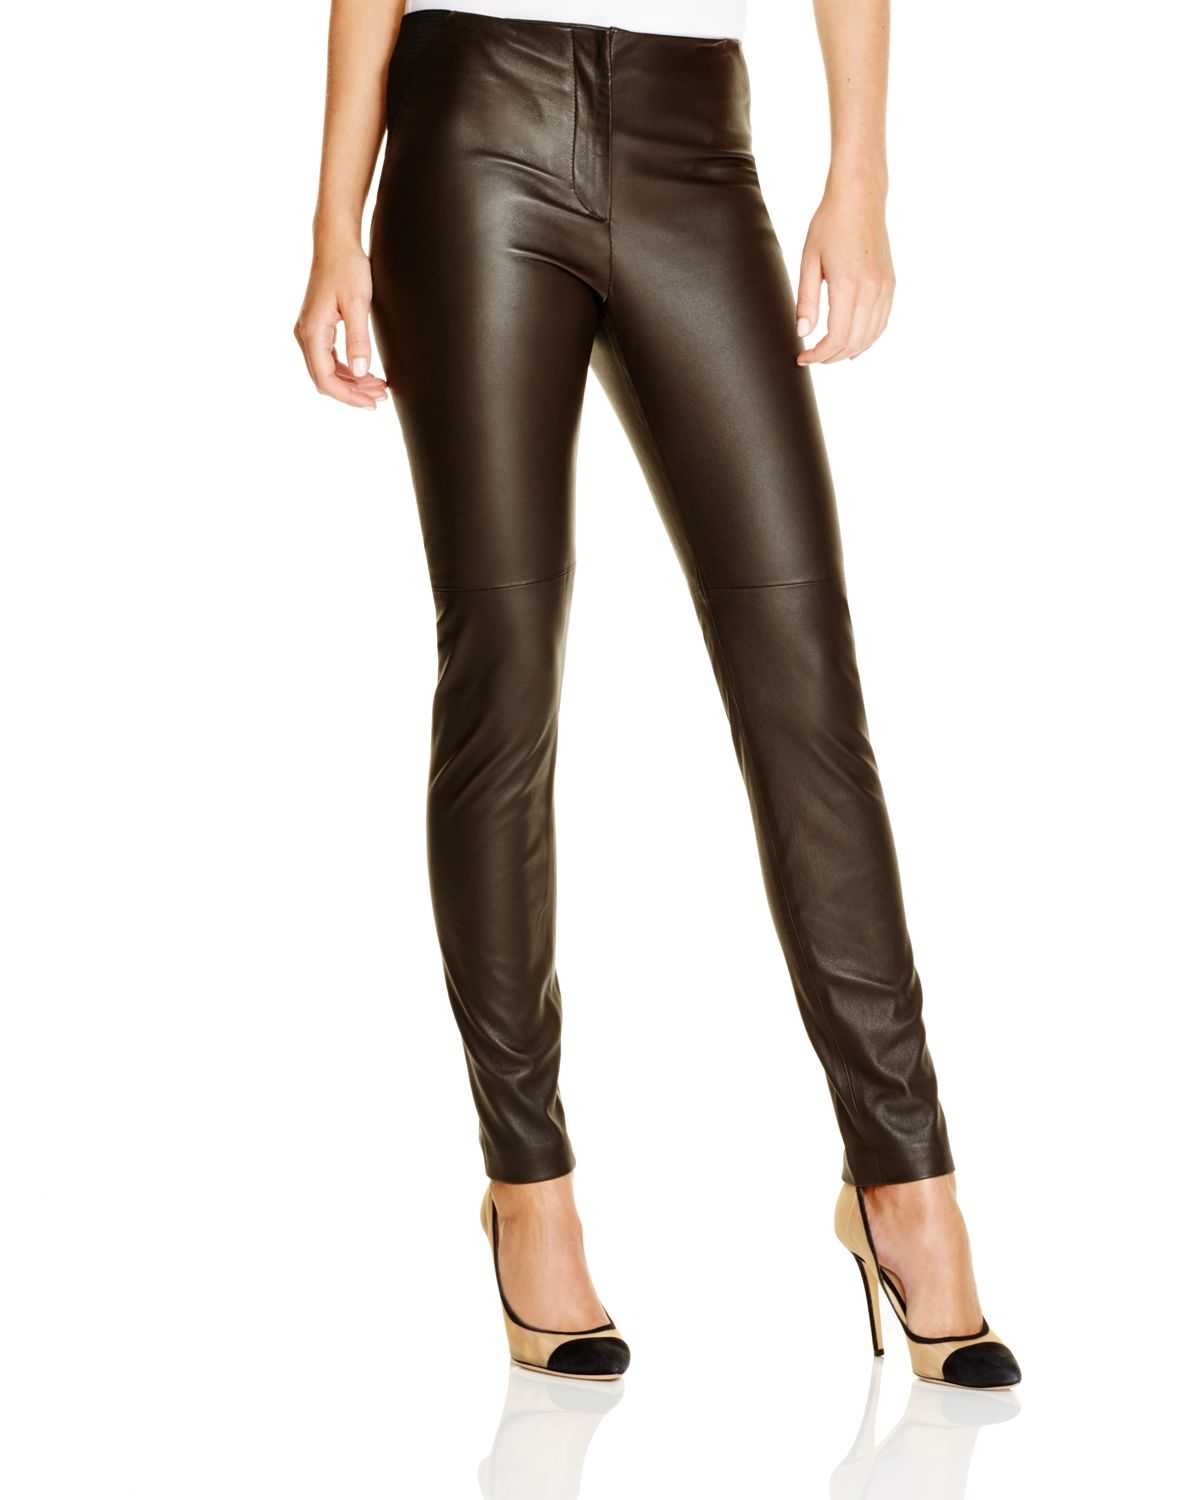 Simple Alfa Img  Showing Gt Womens Brown Leather Pants